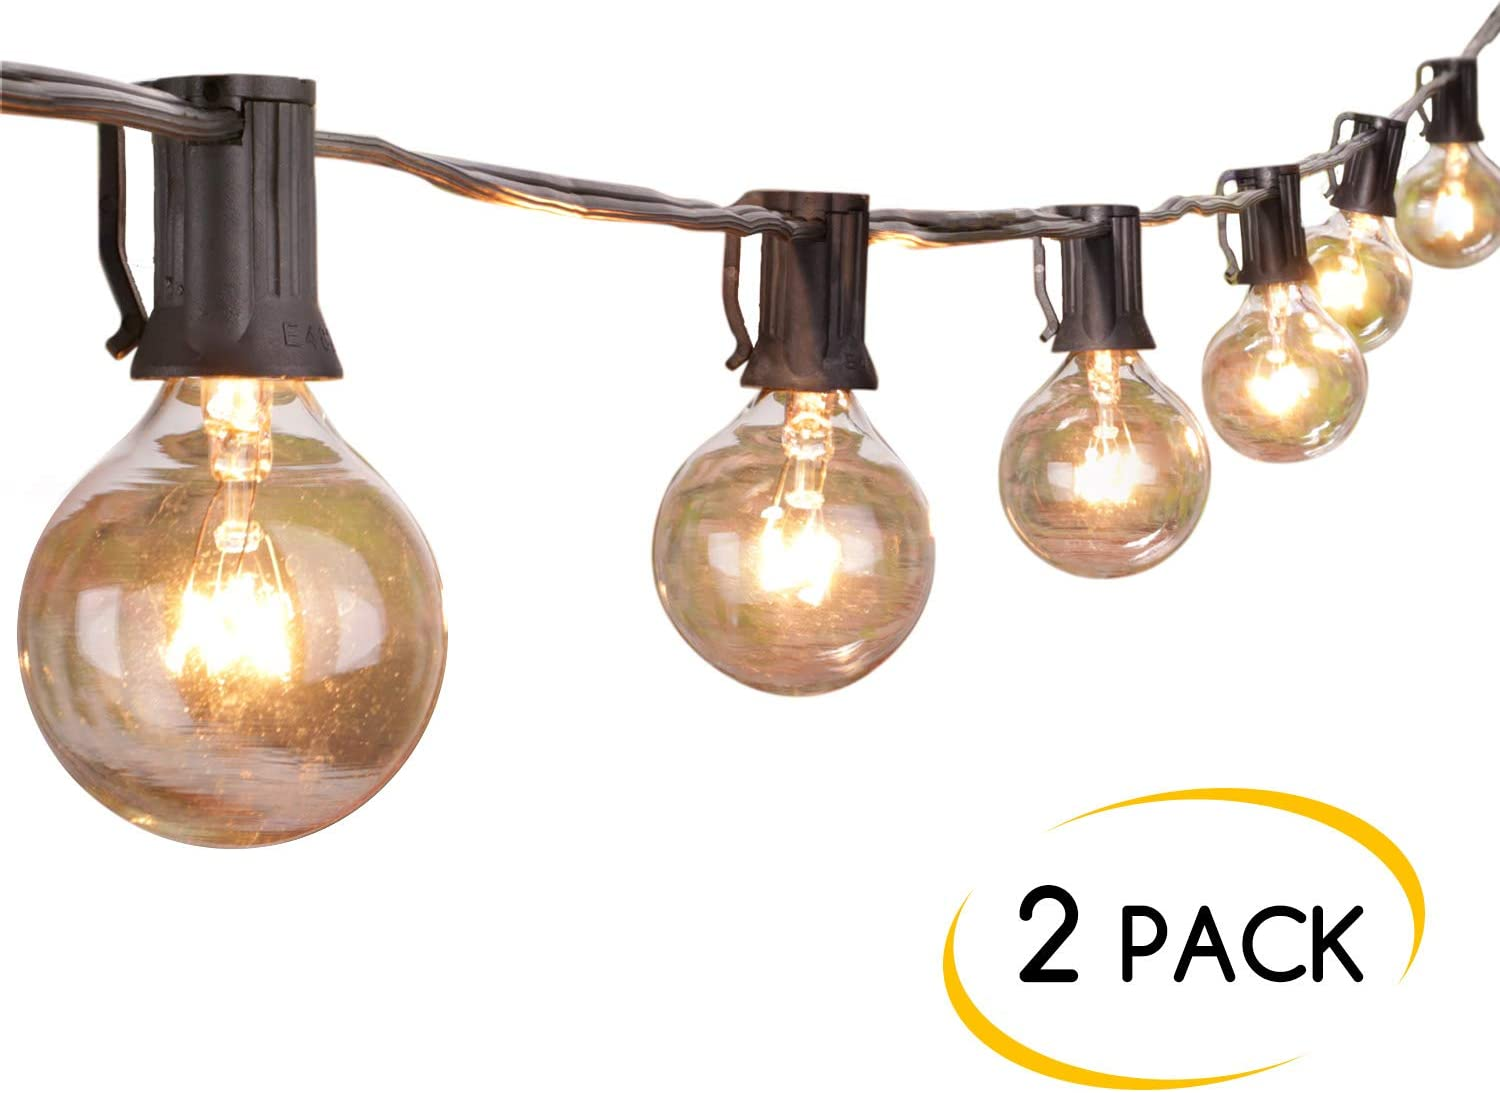 Brightown Outdoor String Lights-2 Pack 25Ft G40 Globe Patio Lights with 26 Edison Glass Bulbs(1 Spare), Waterproof Connectable Hanging Light for Backyard Porch Balcony Decor, E12 Socket Base, Black - -